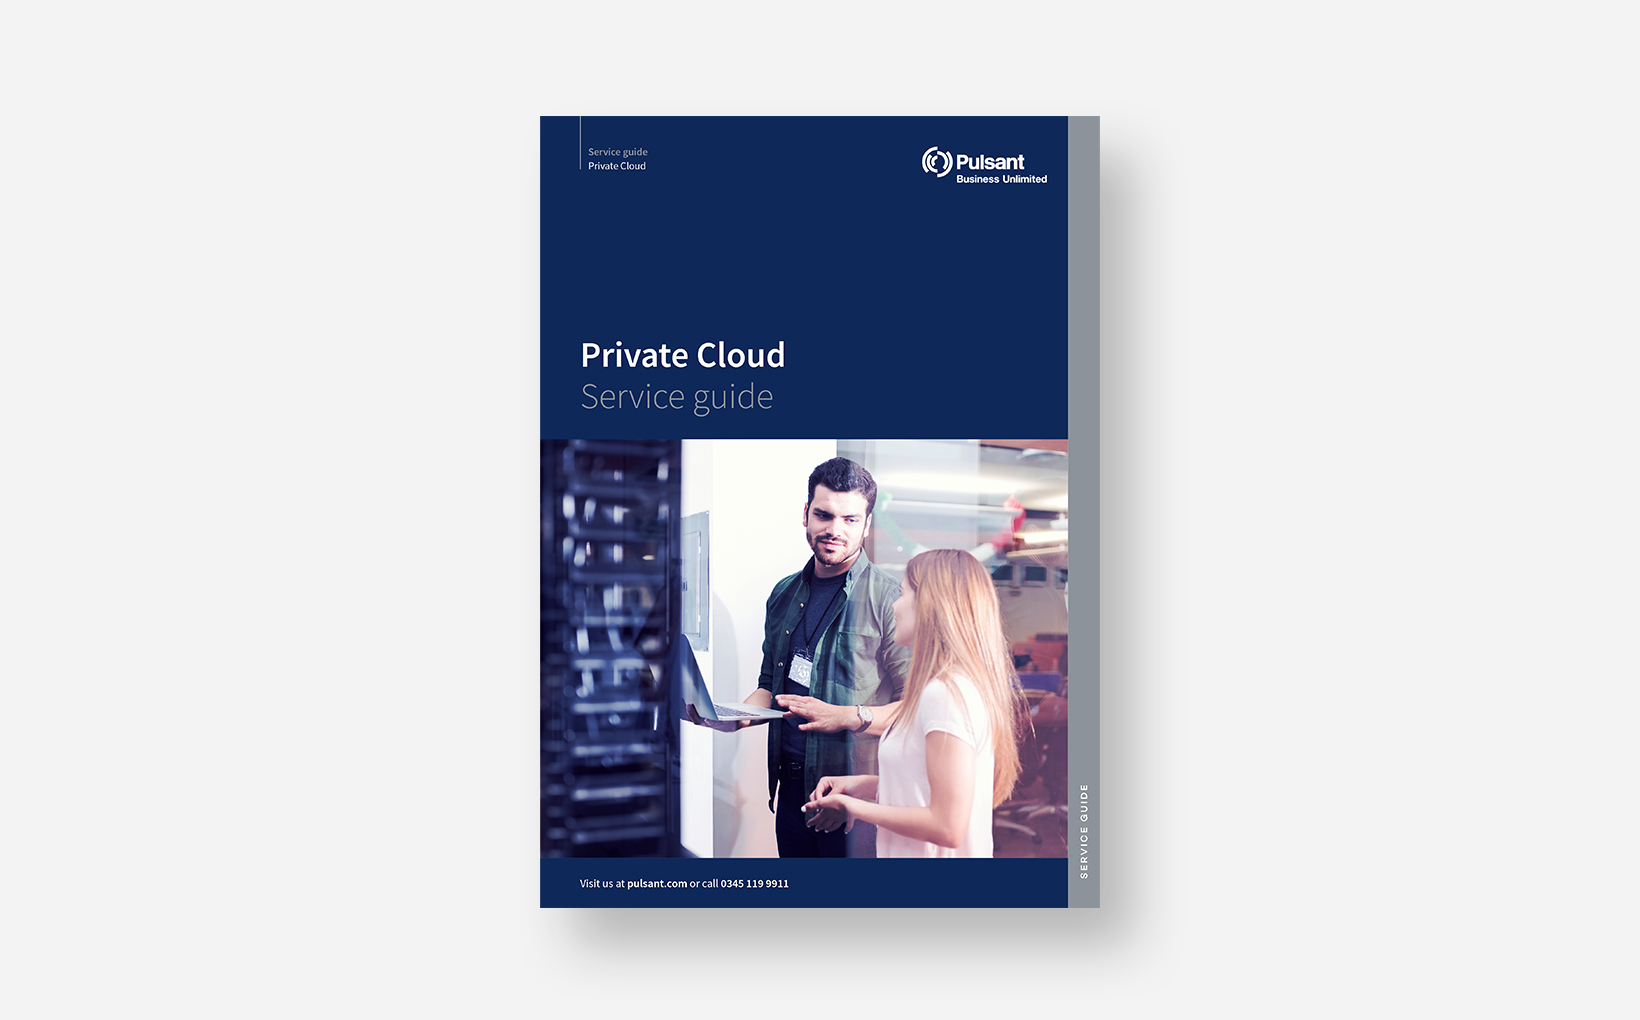 Everything you need to know about our Private Cloud platform